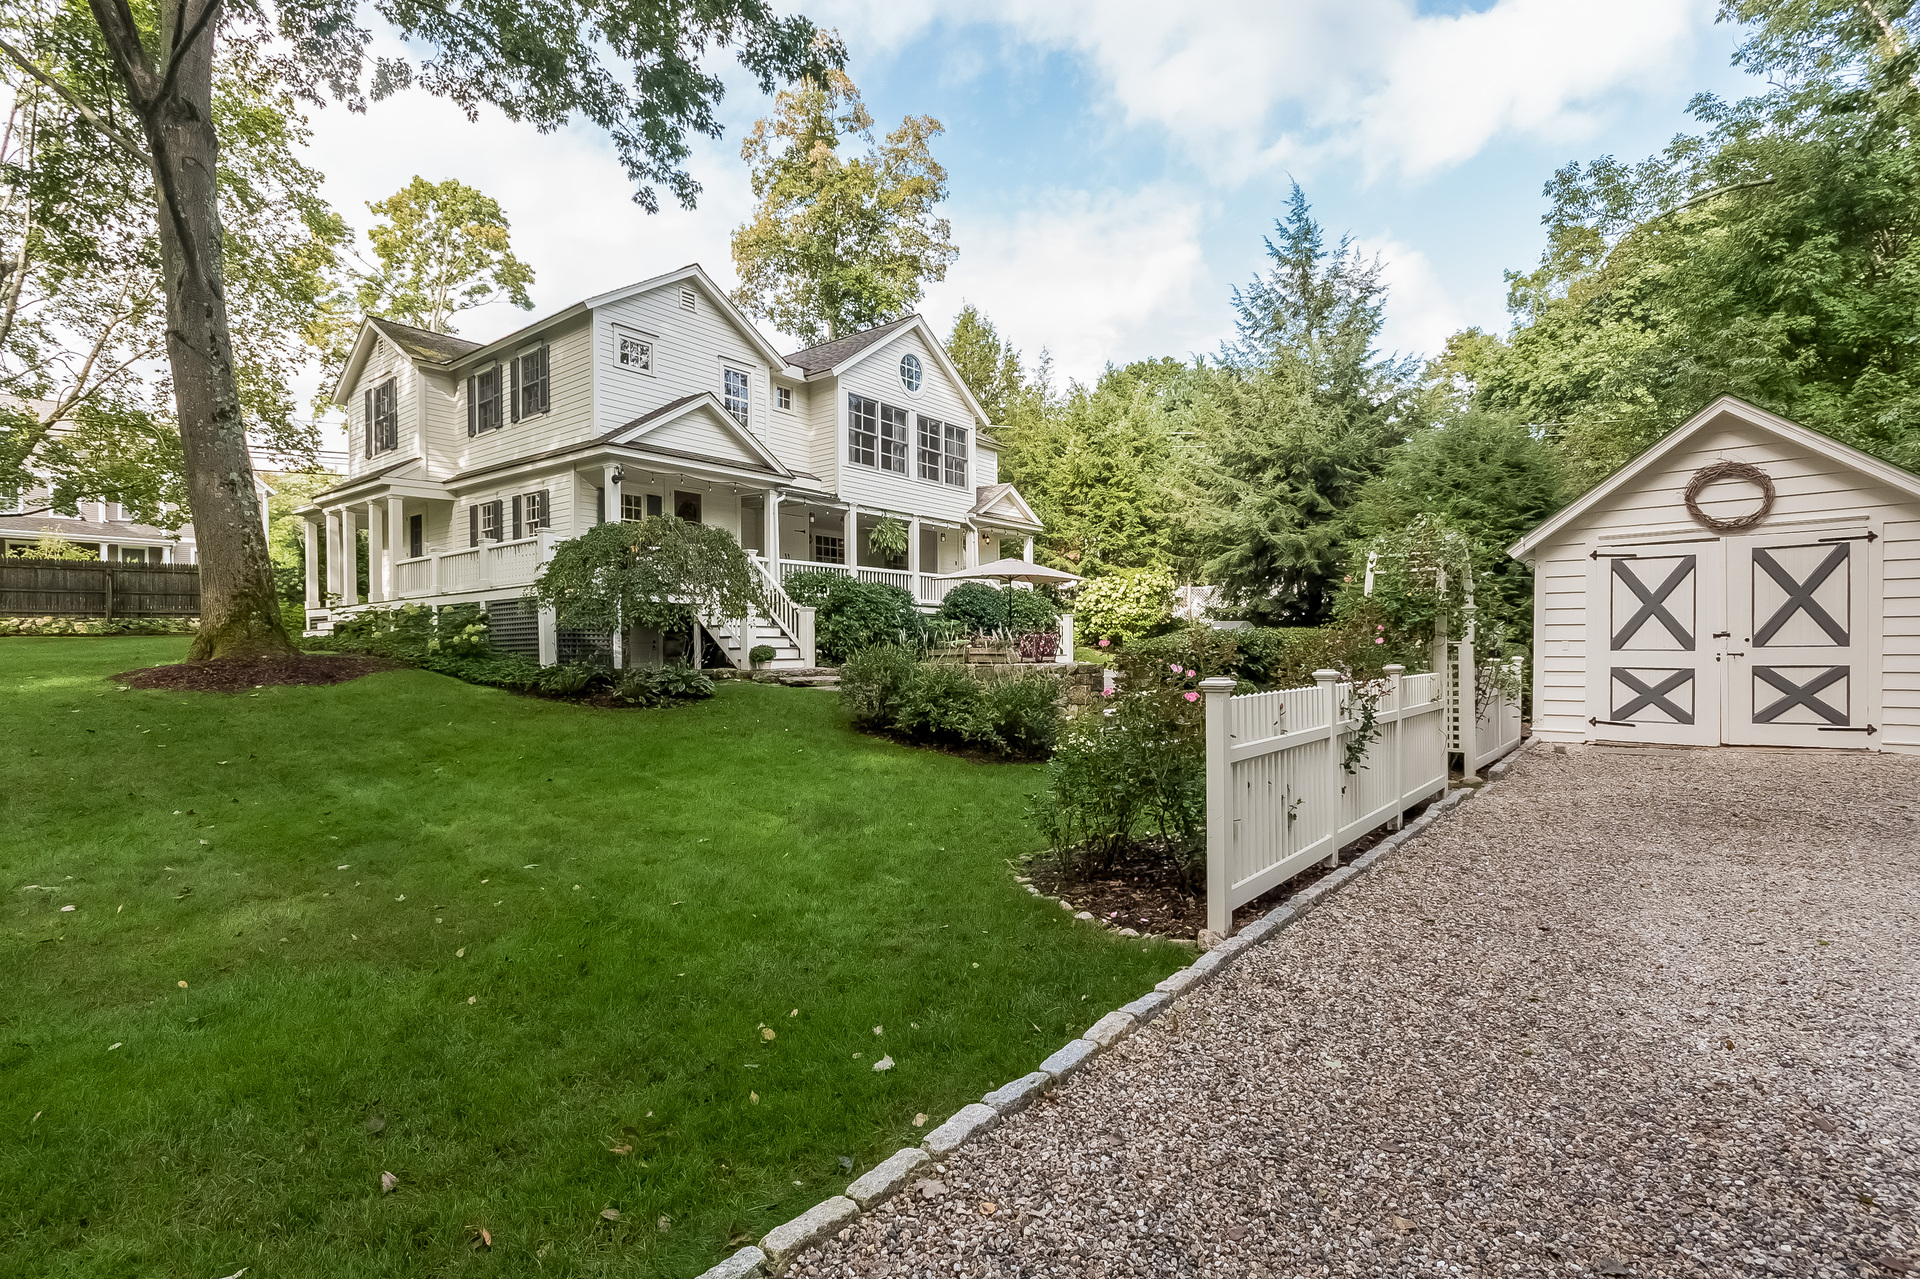 Vivienda unifamiliar por un Venta en Updated Antique Colonial 234 Silvermine Avenue Silvermine, Norwalk, Connecticut, 06850 Estados Unidos